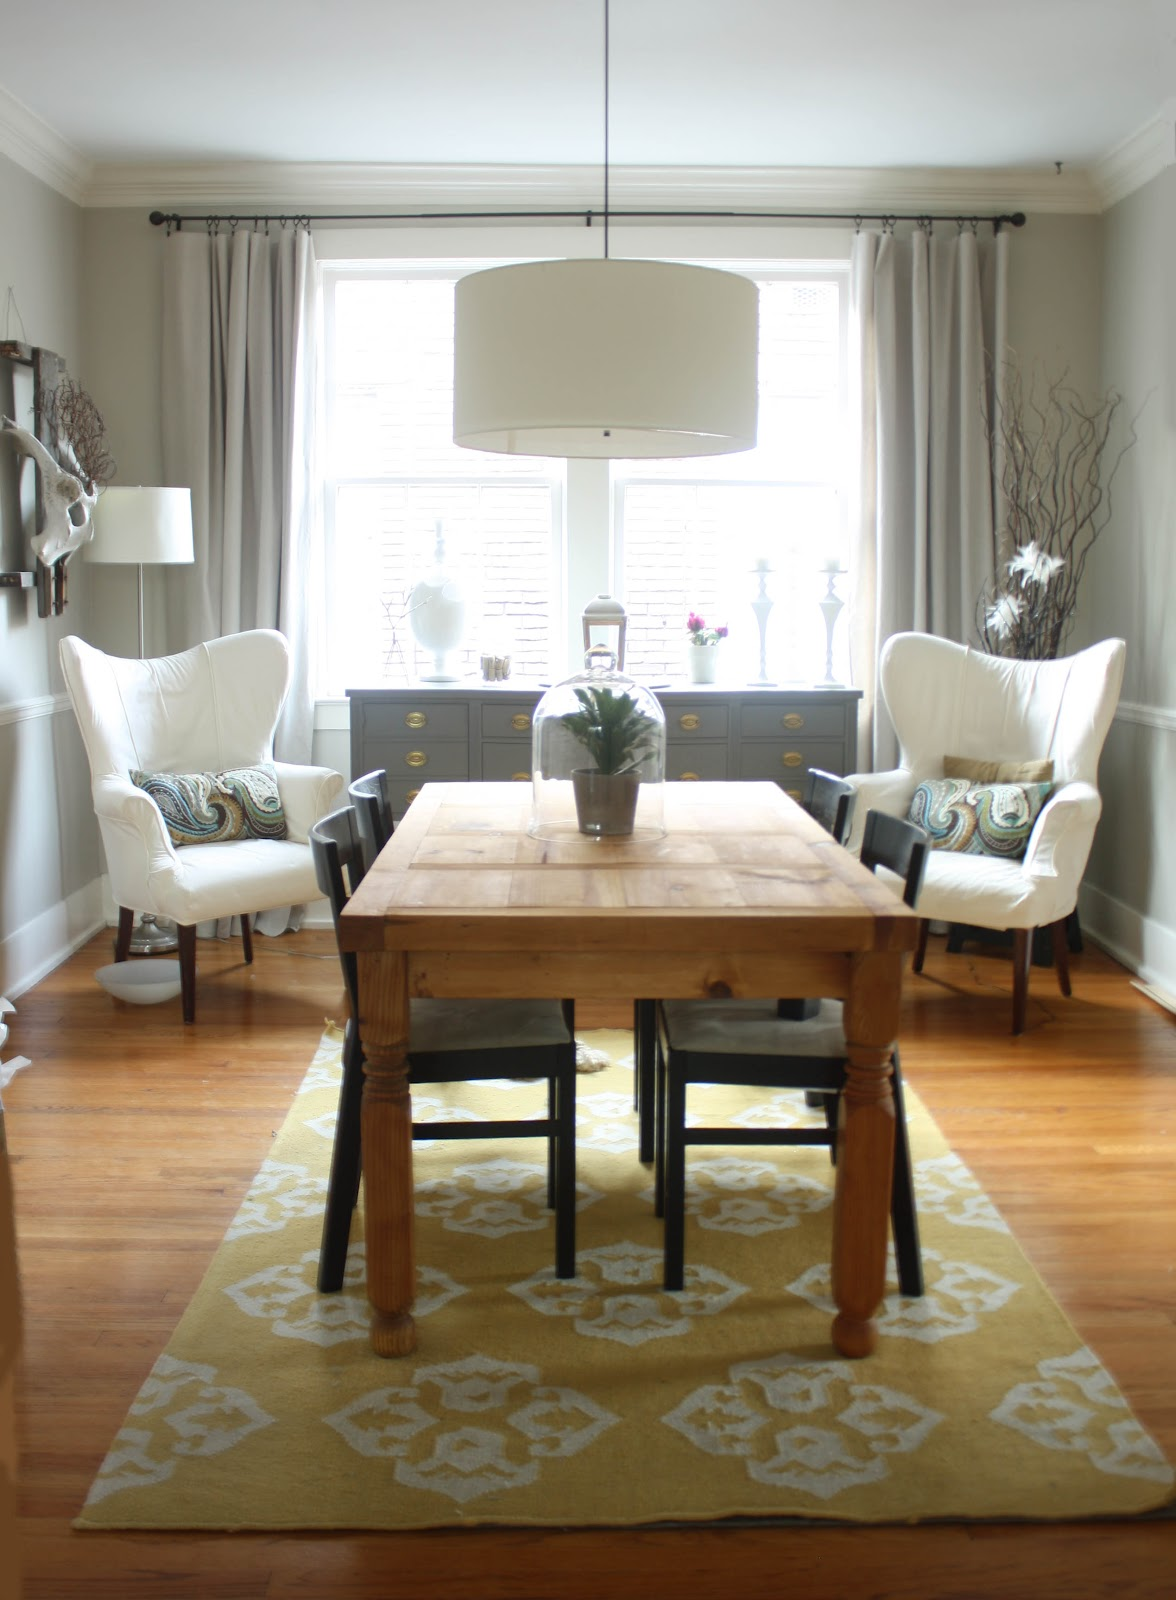 Image of: furniture birch dining table